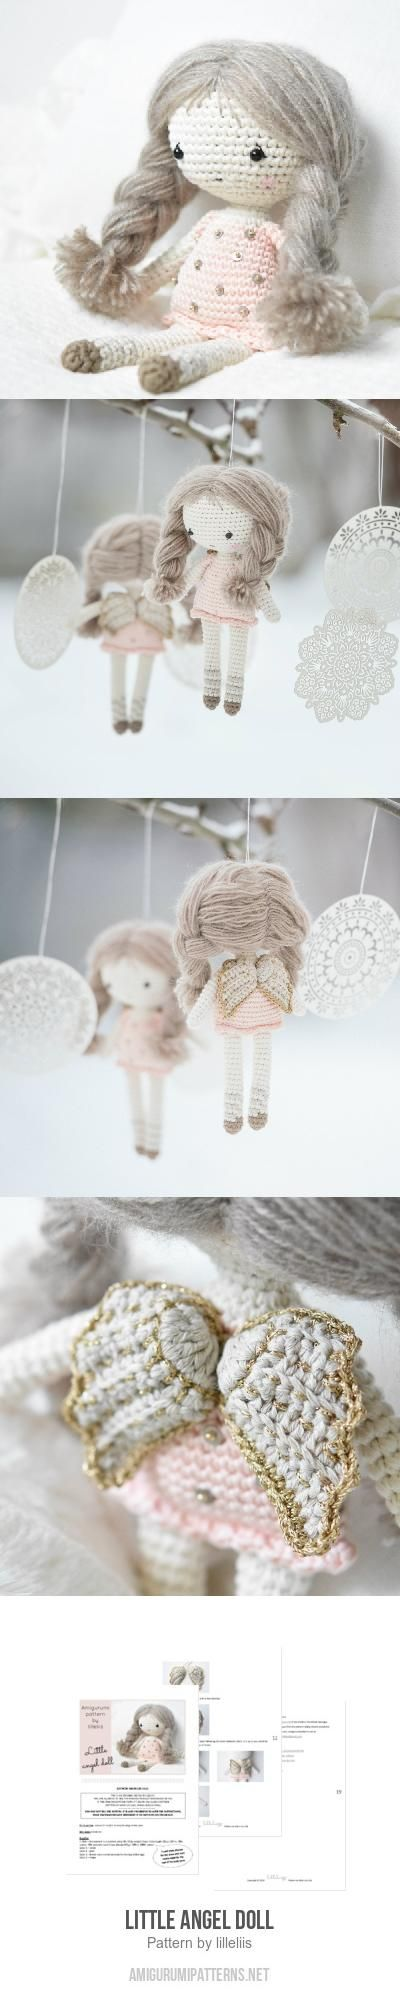 Little Angel Doll Amigurumi Pattern More